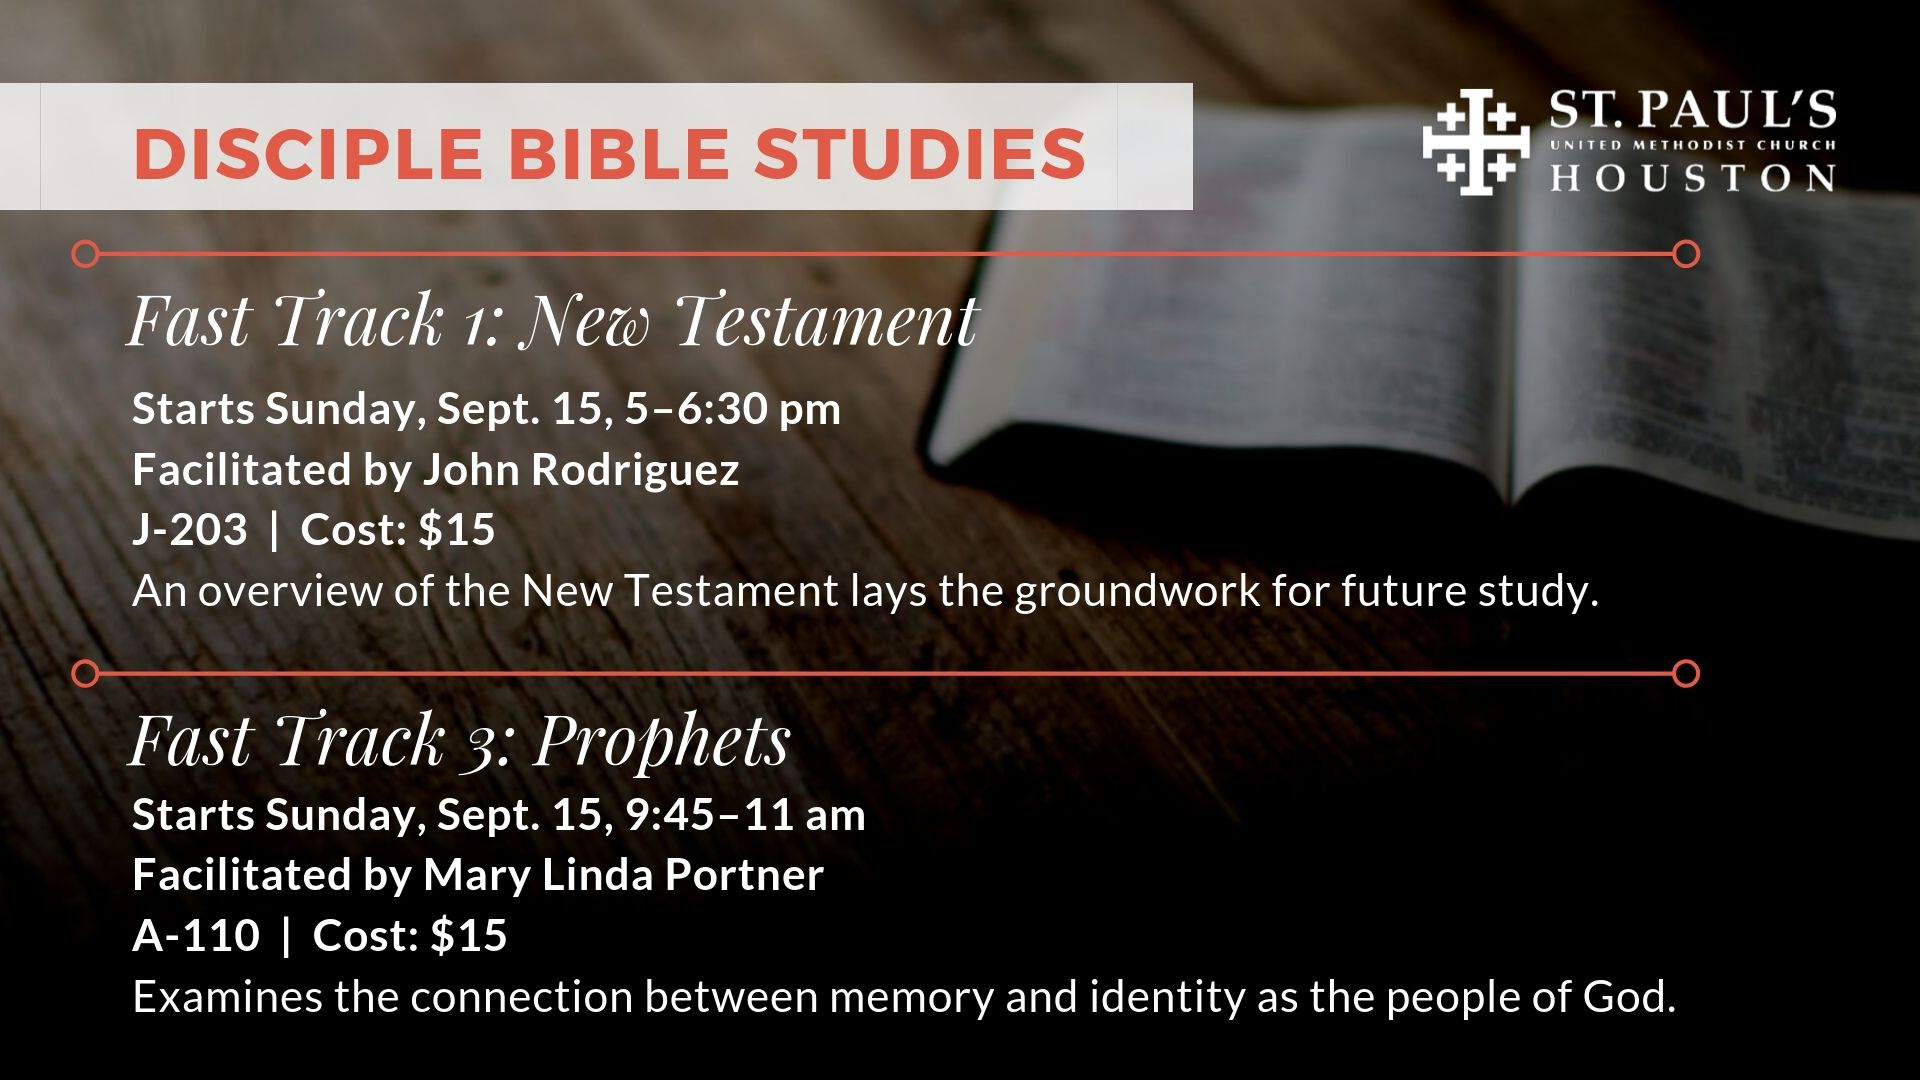 16x9 - Fall 2019 Disciple Bible Studies - facilitated by.jpg